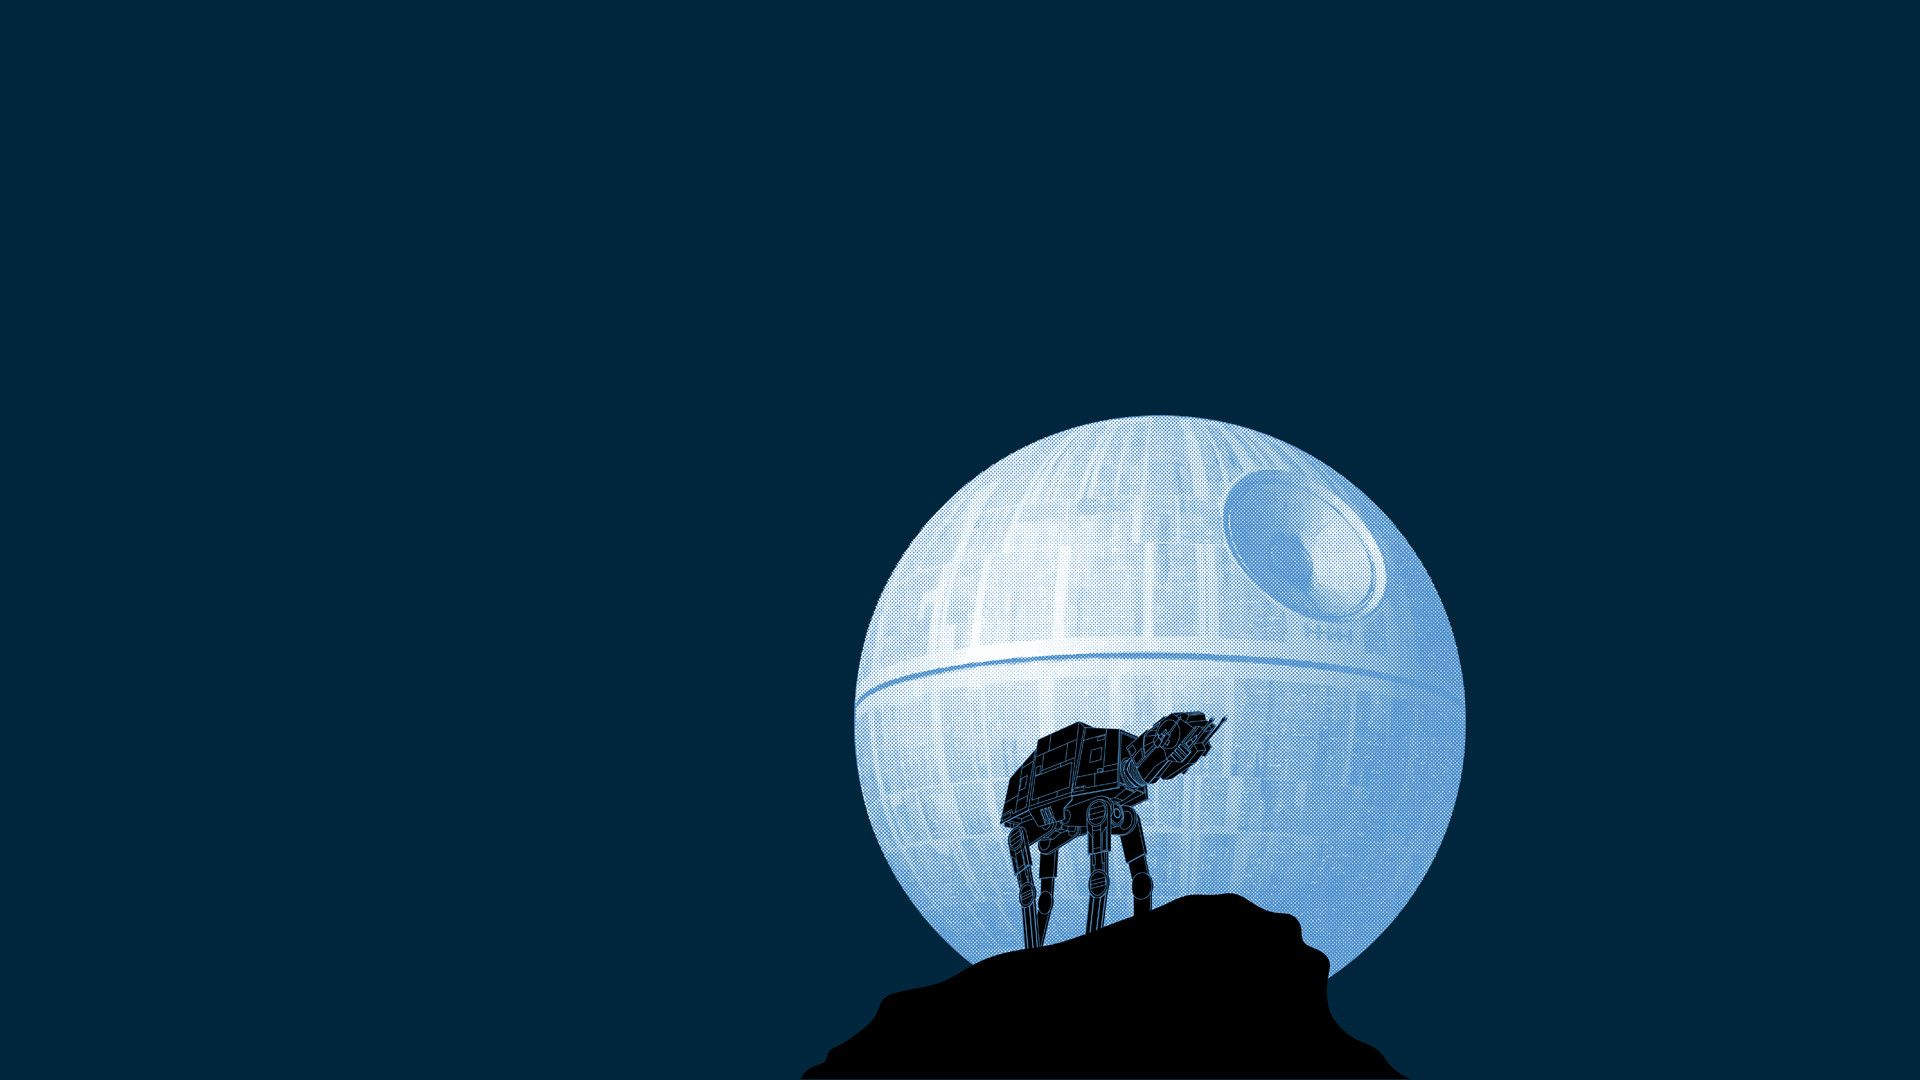 Aesthetic Star Wars Wallpapers Top Free Aesthetic Star